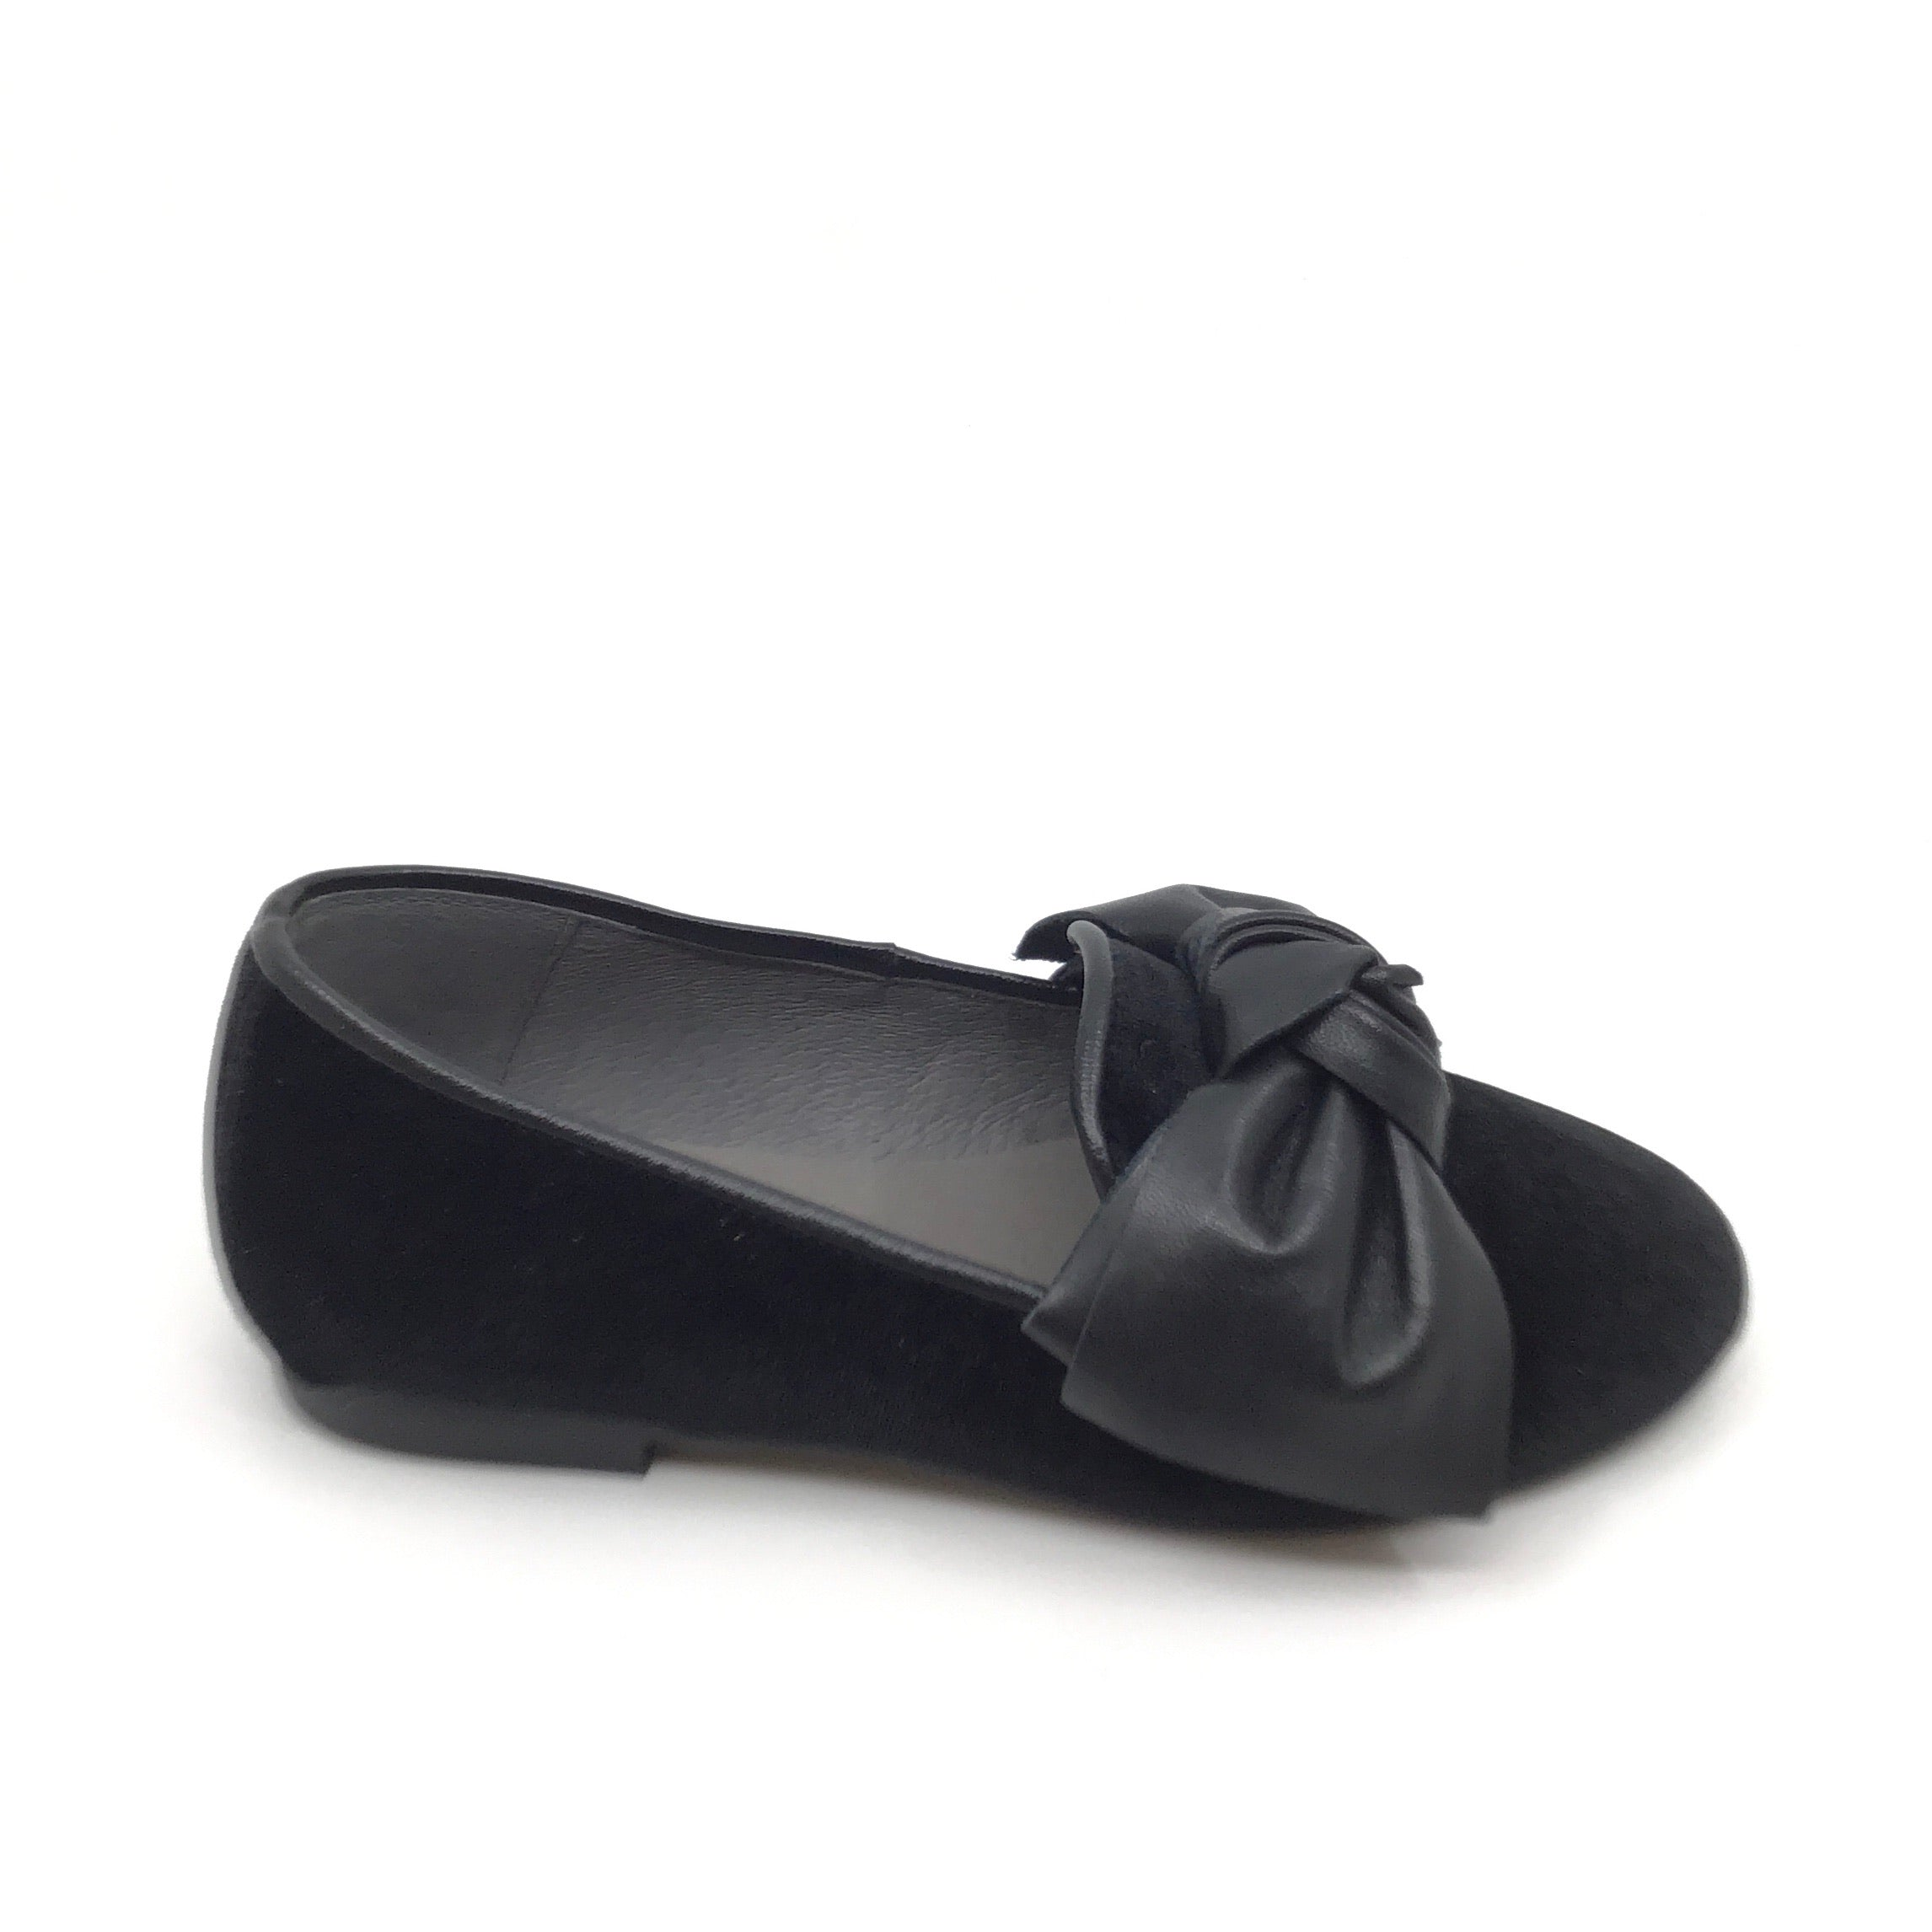 Blublonc Black Bow Slip On